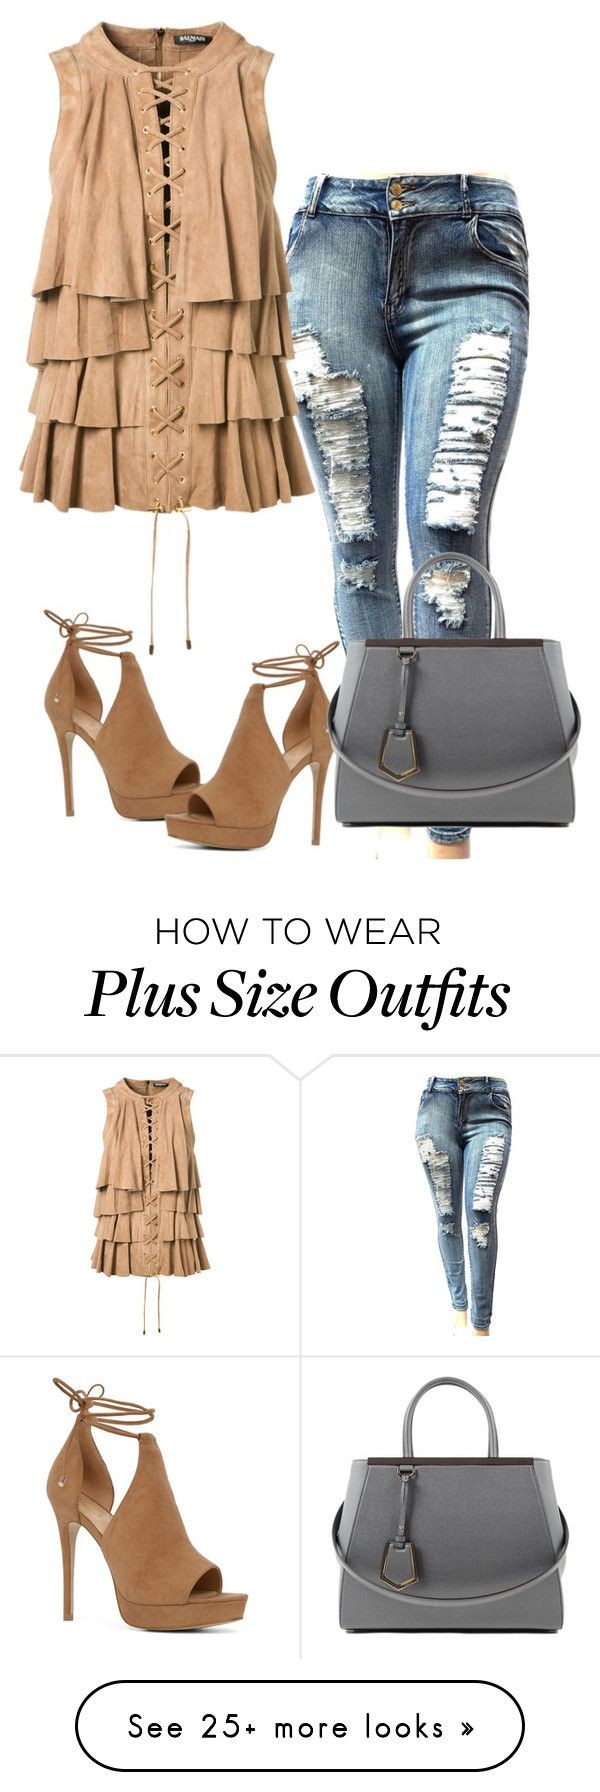 """Untitled #6409"" by tailichuns on Polyvore featuring Balmain, ALDO and Fendi"